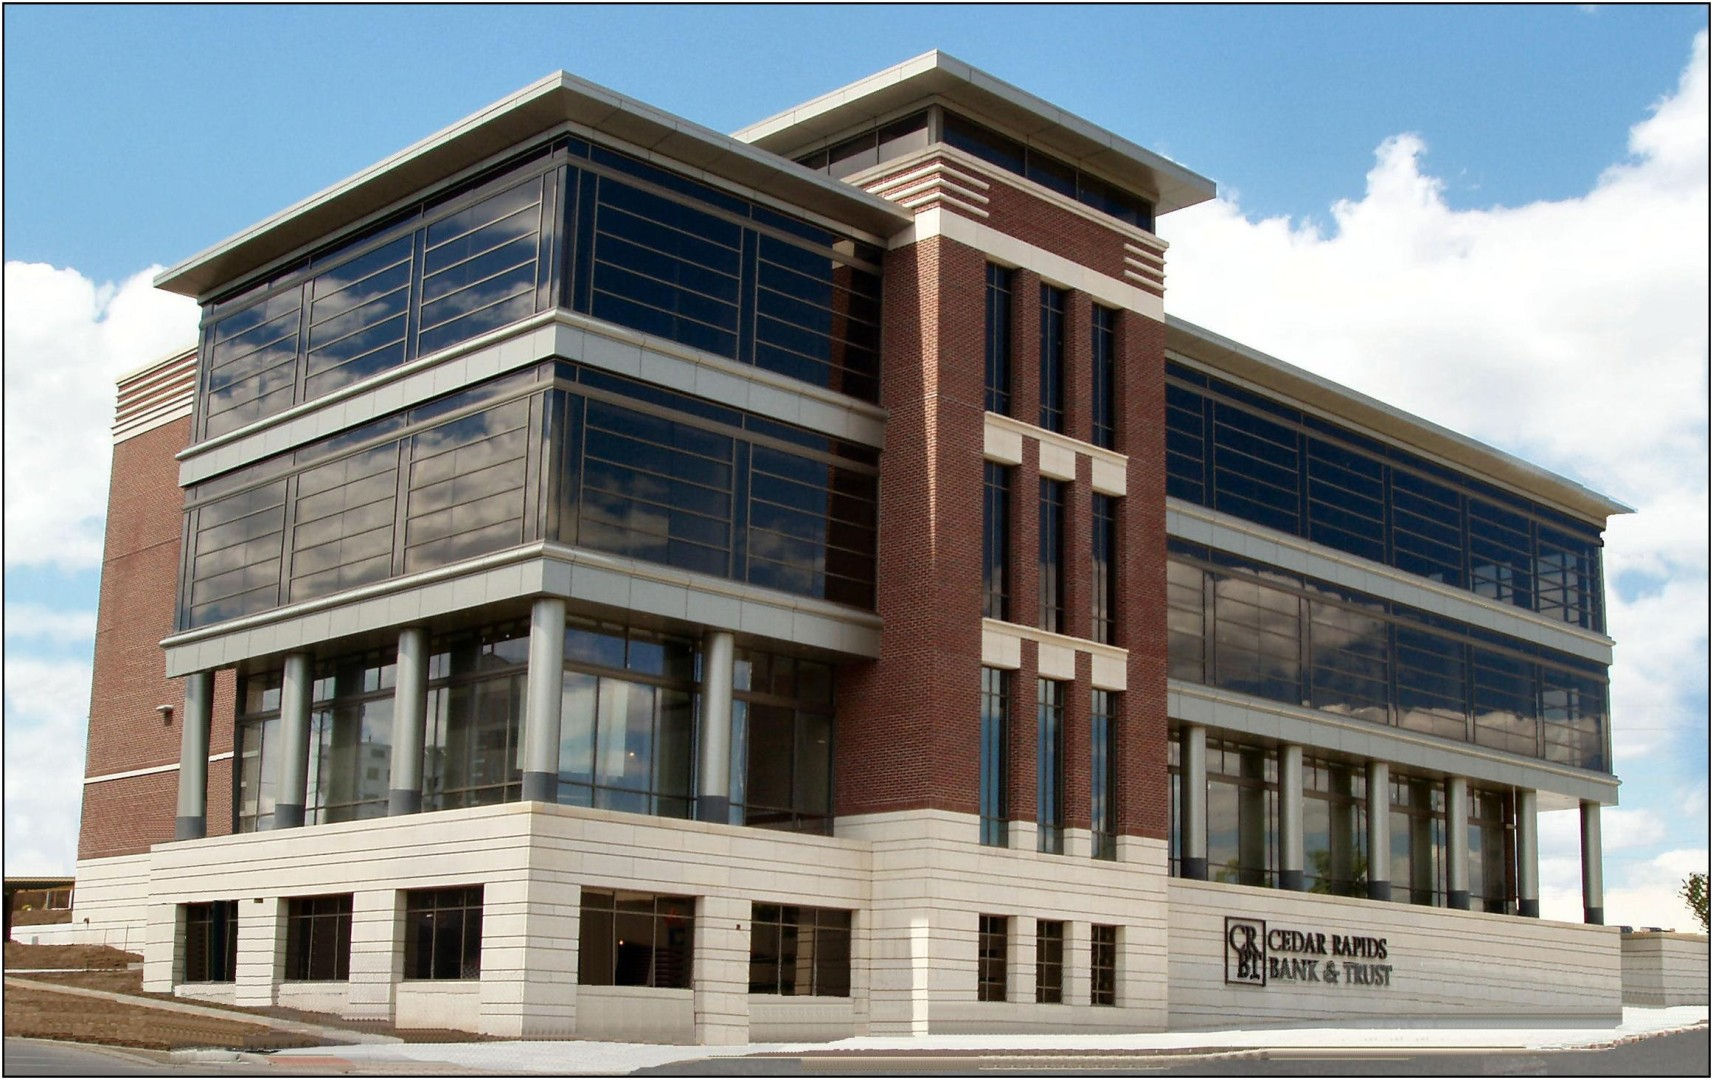 Cedar Rapids Bank and Trust (Cedar Rapids)